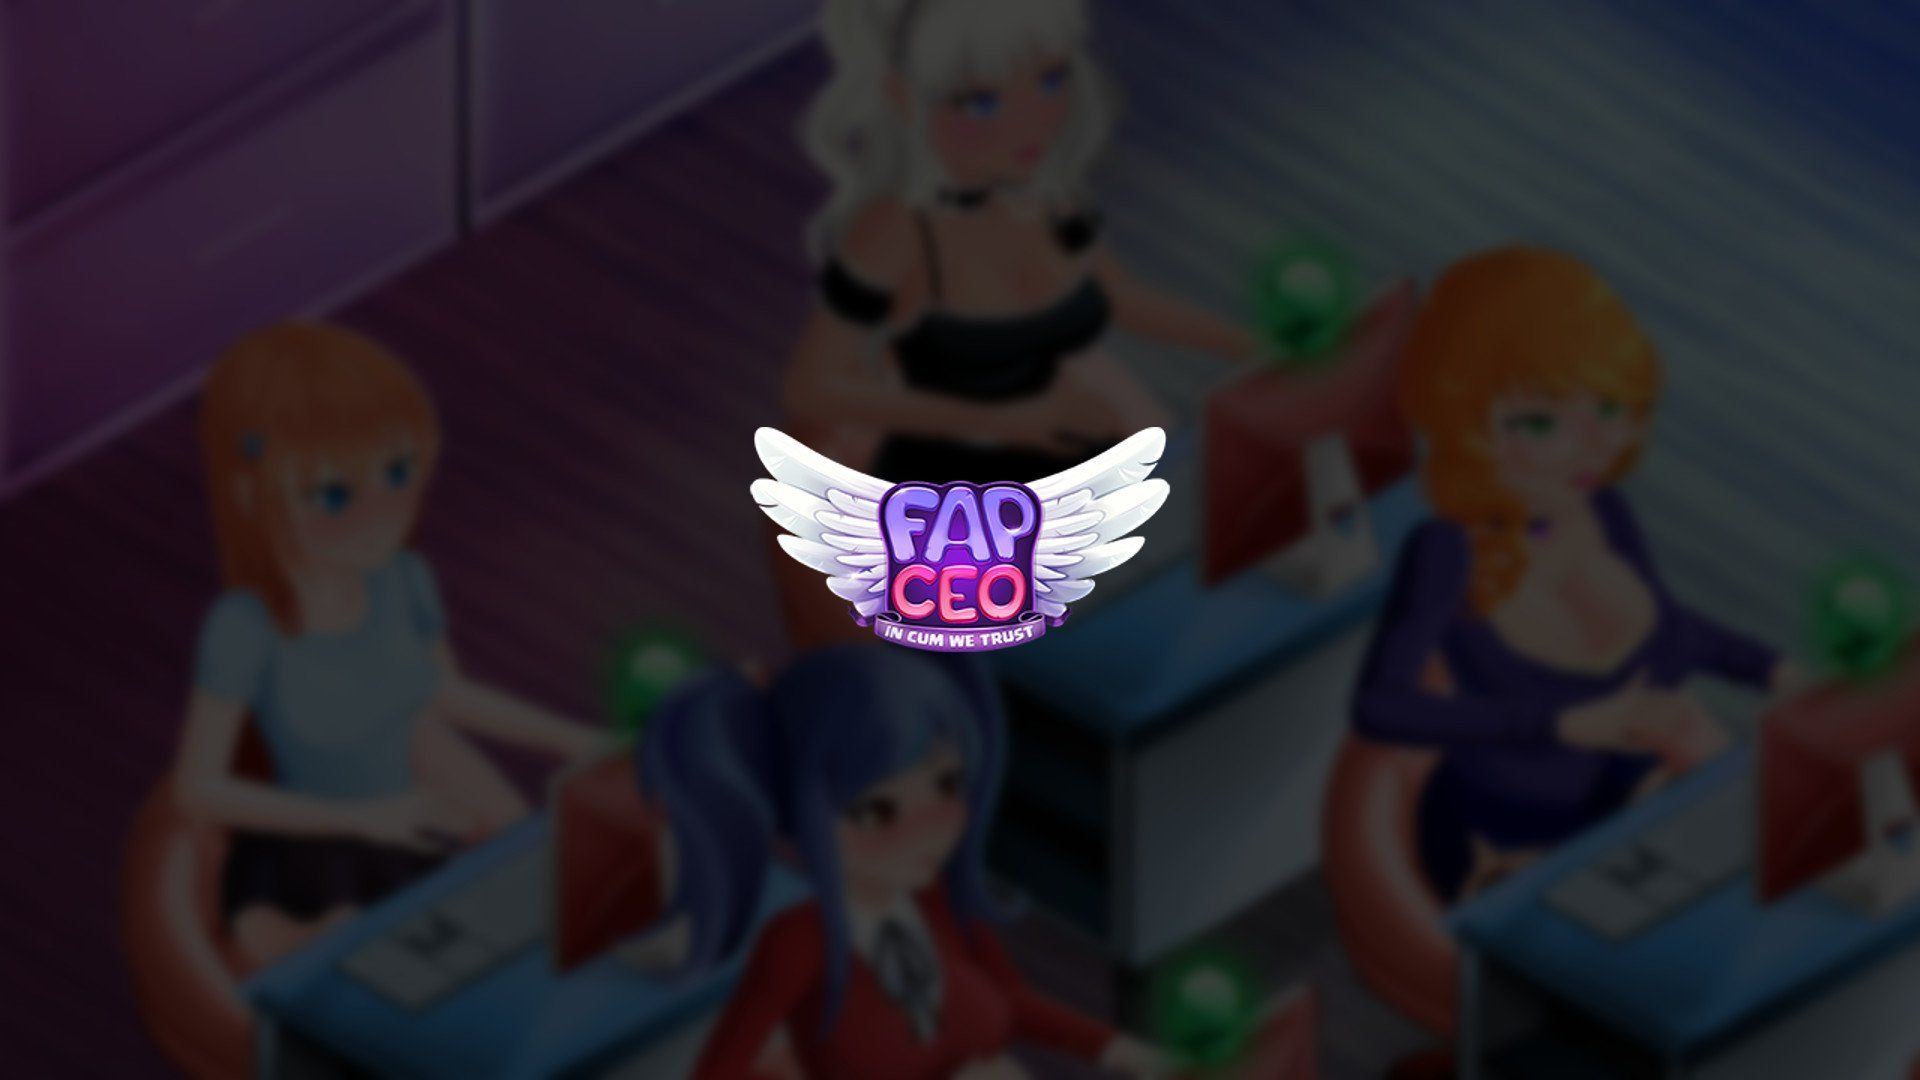 Fap ceo cheat engine – GET rubys and keys! 🔥 2021